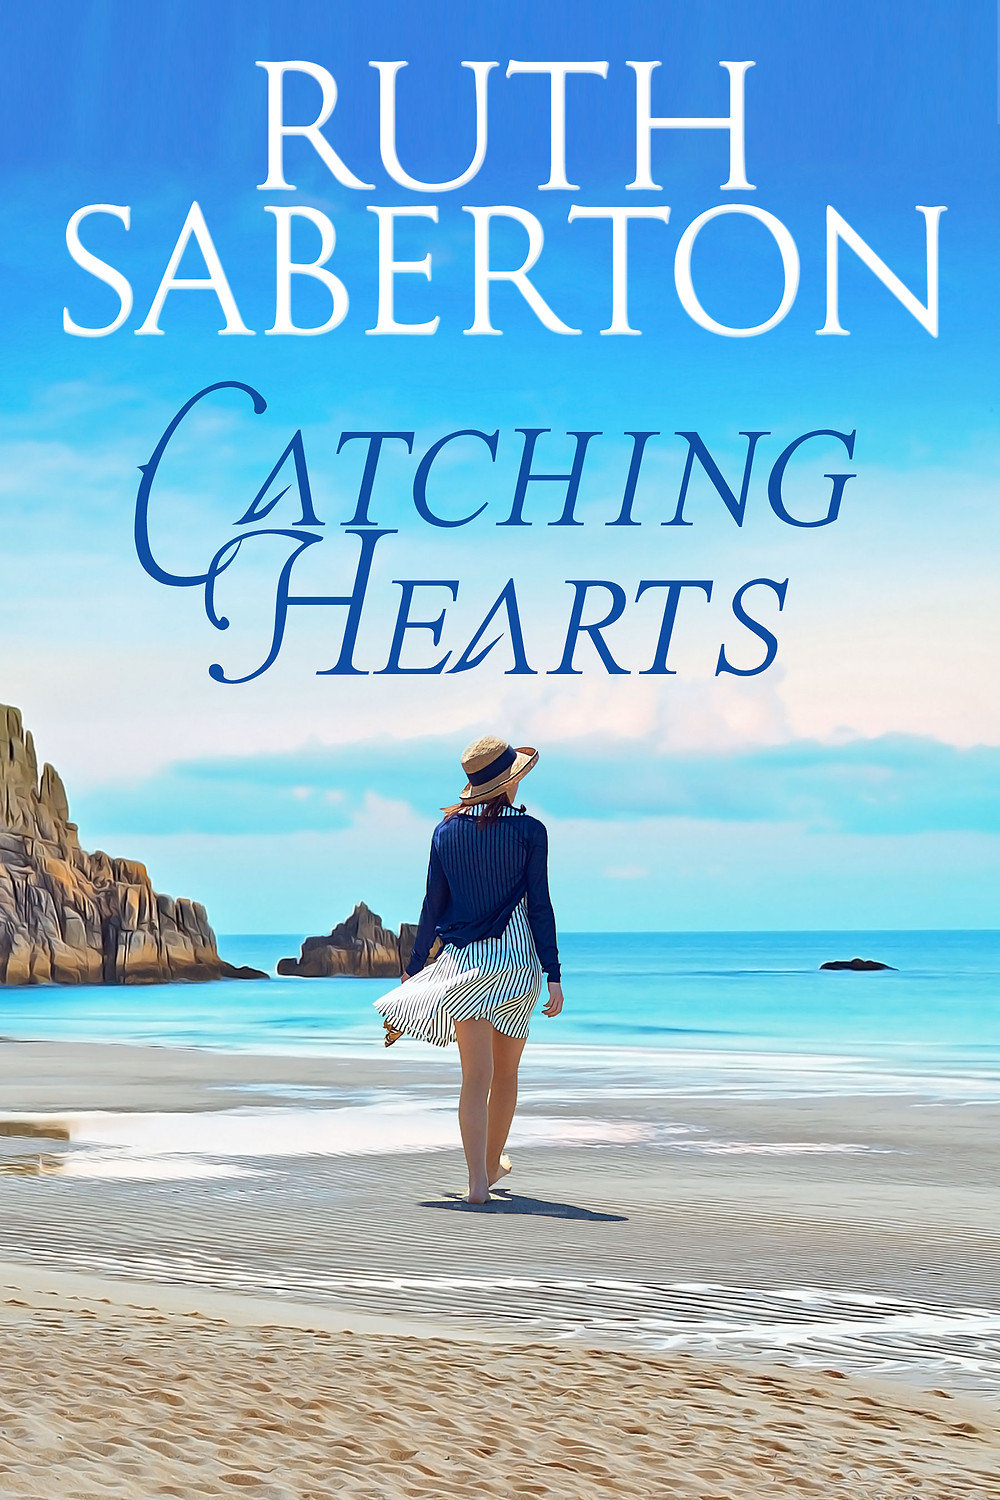 Catching Hearts Novel by Ruth Saberton